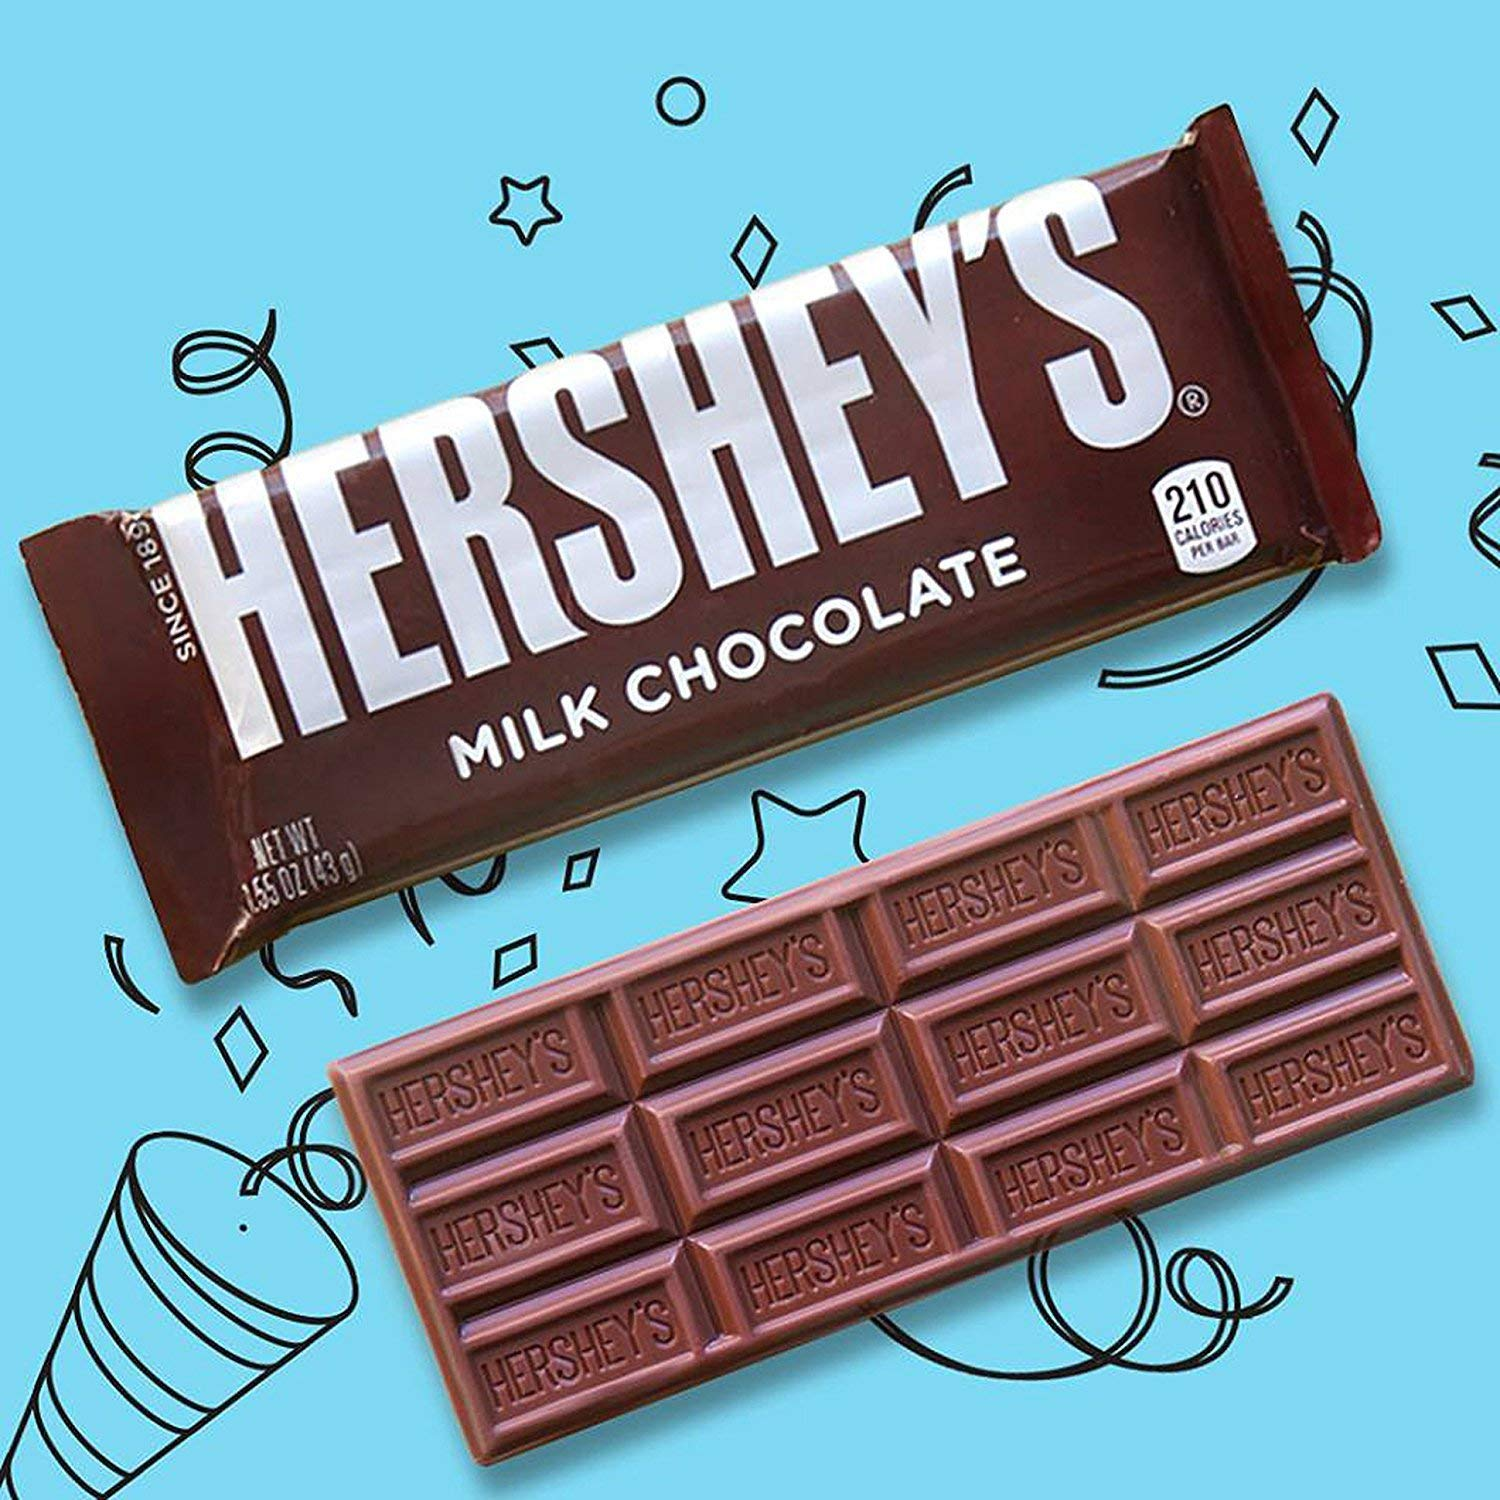 HERSHEY'S Chocolate Candy Bars, Extra Large, 4.4 Ounce Bar (Pack of 12) (Exclusive Edition)